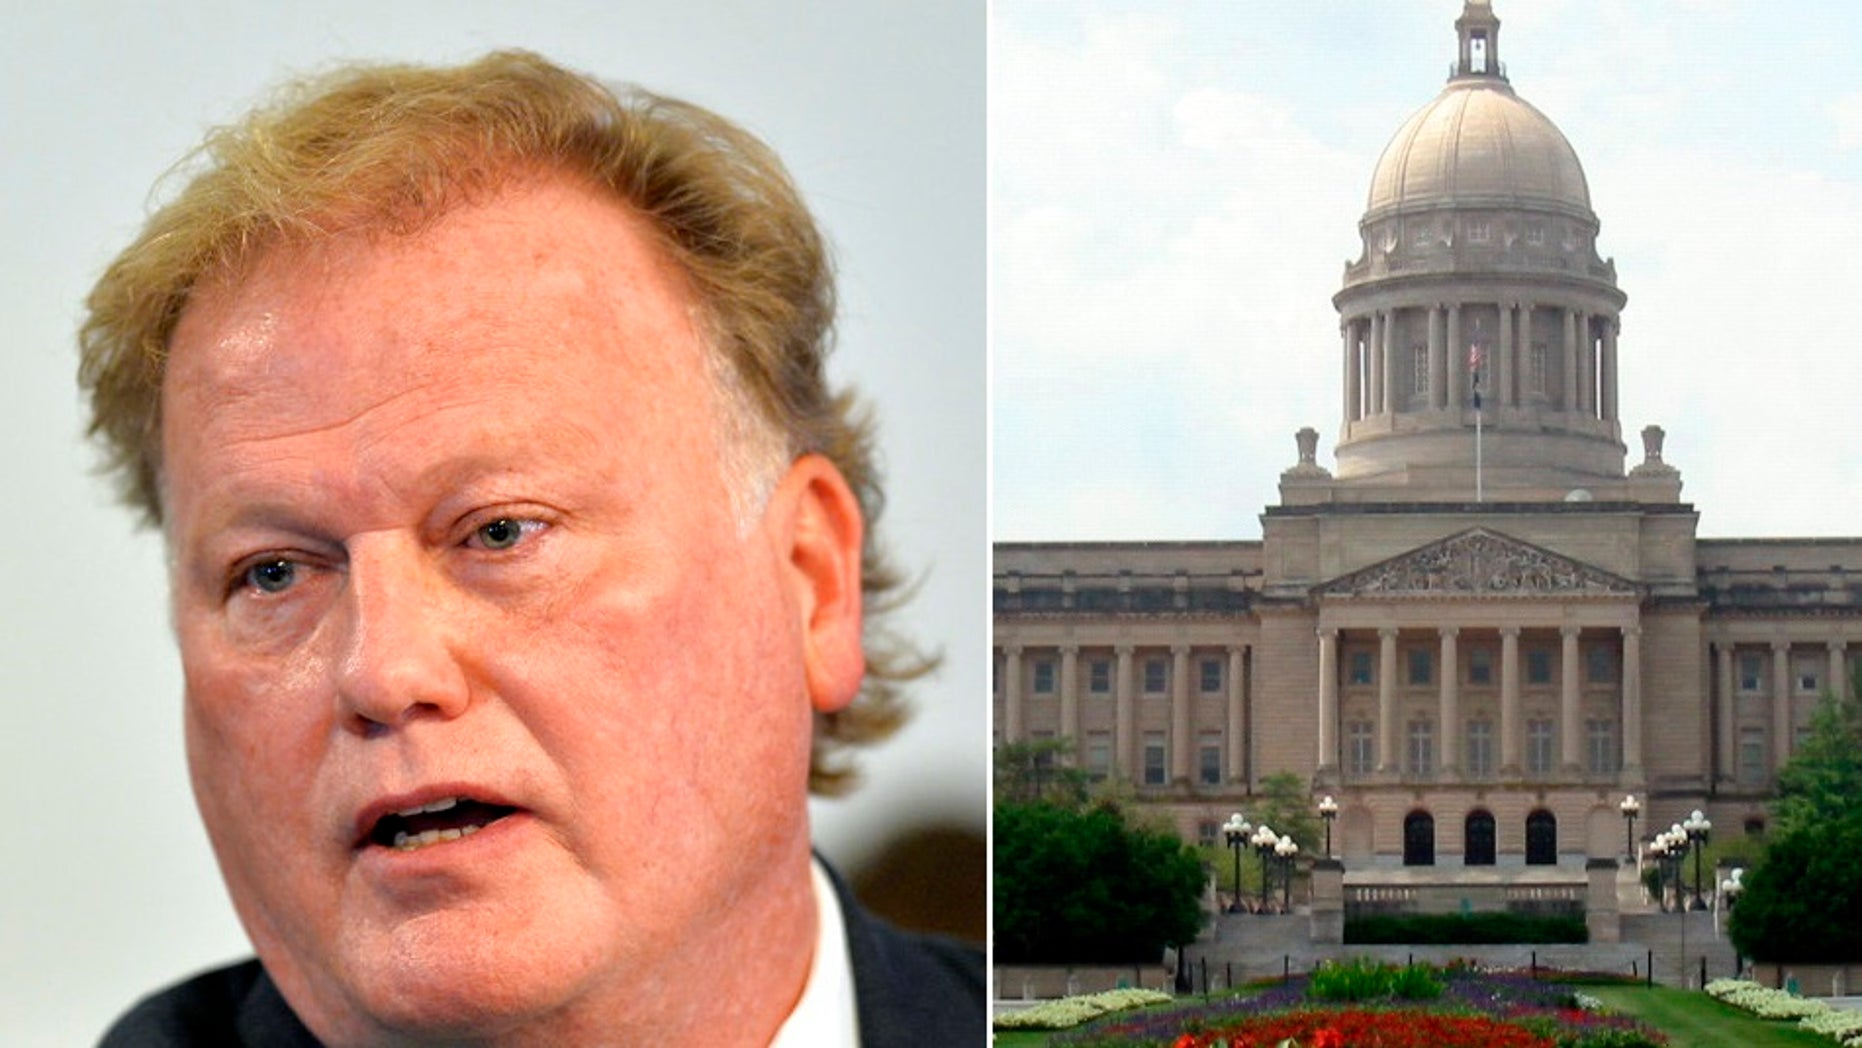 Kentucky State Rep. Dan Johnson apparently killed himself Wednesday amid a sexual assault allegation, just weeks after another sex scandal rocked the state government.